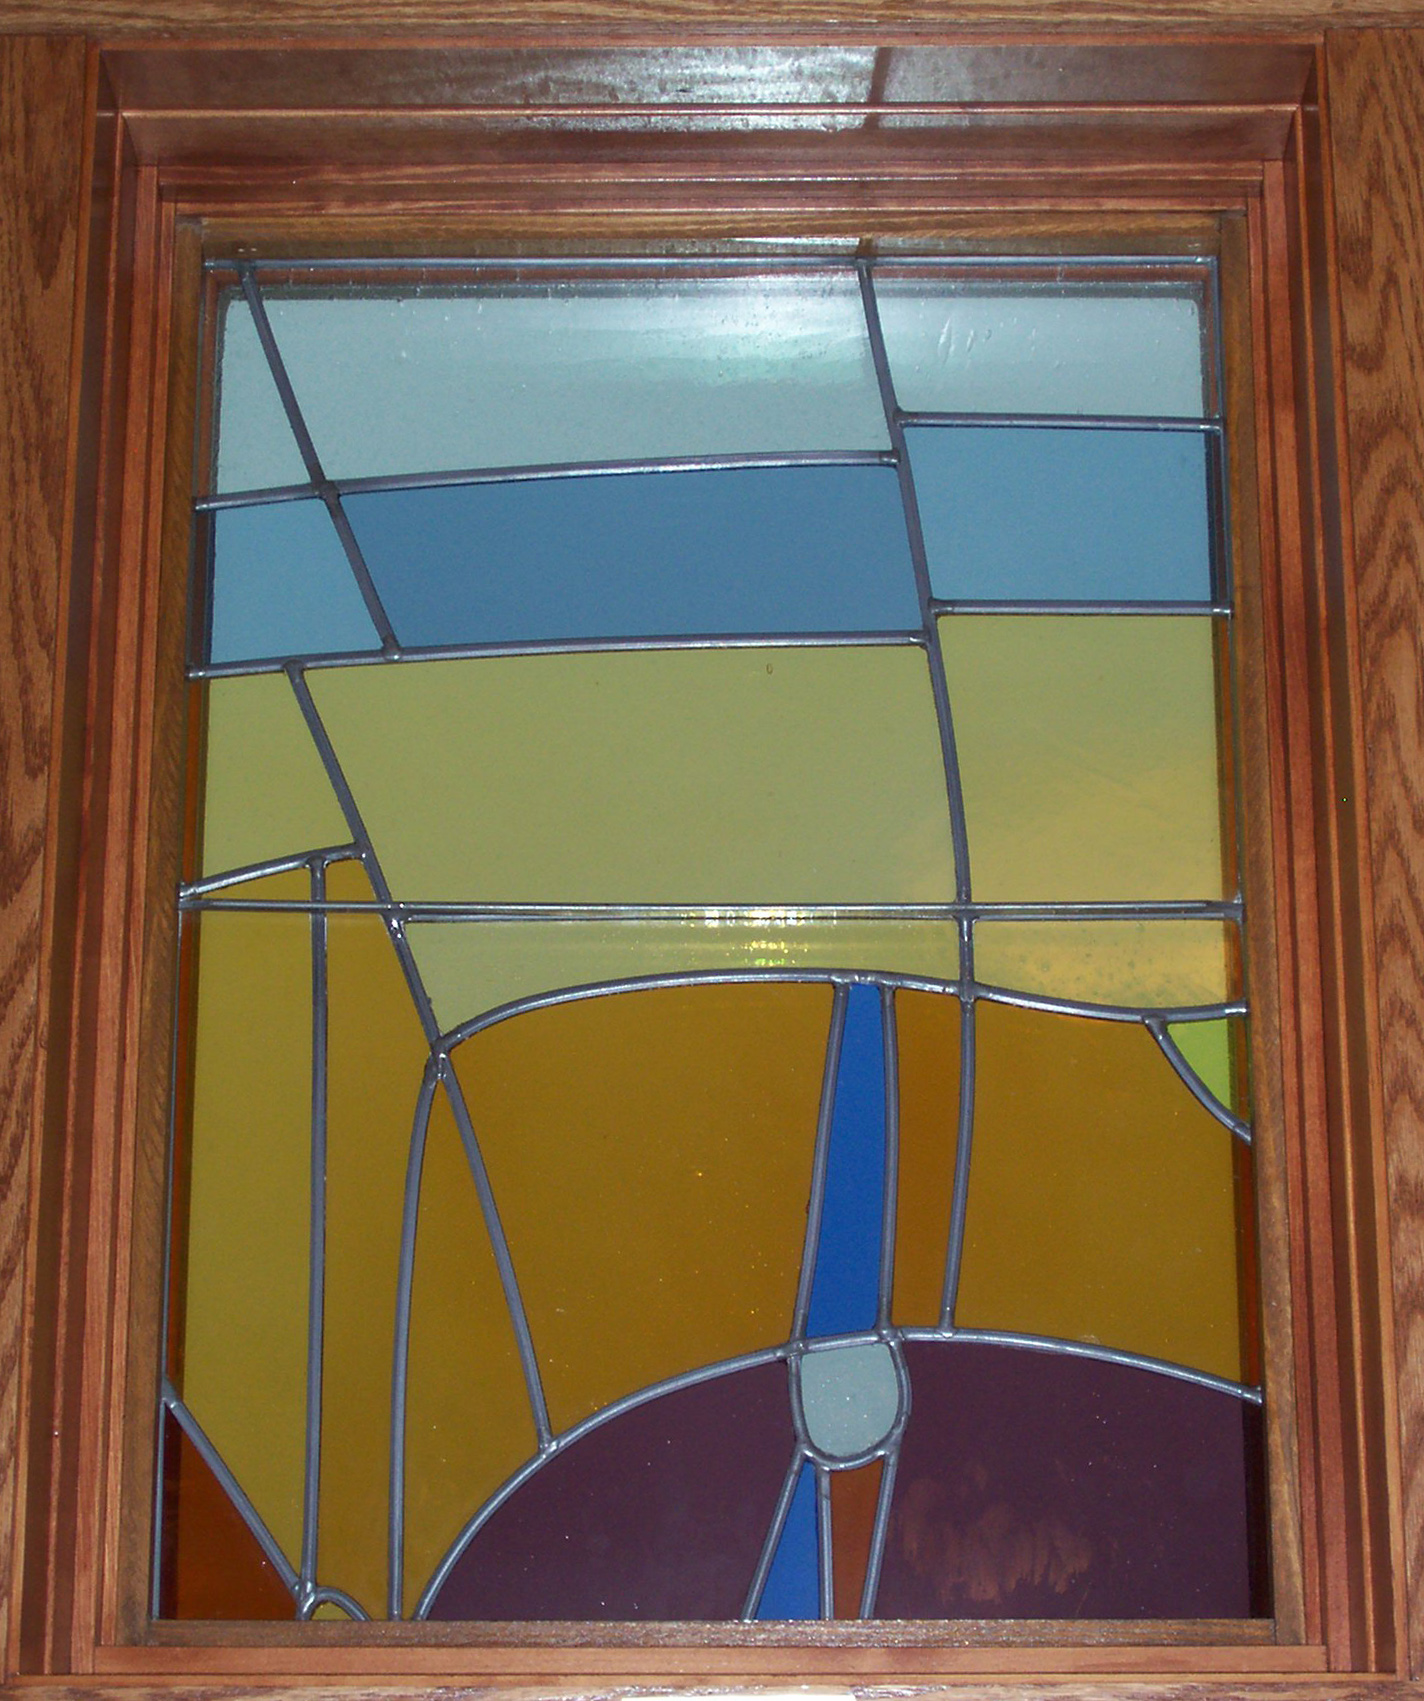 Ellen F. Silbaugh window